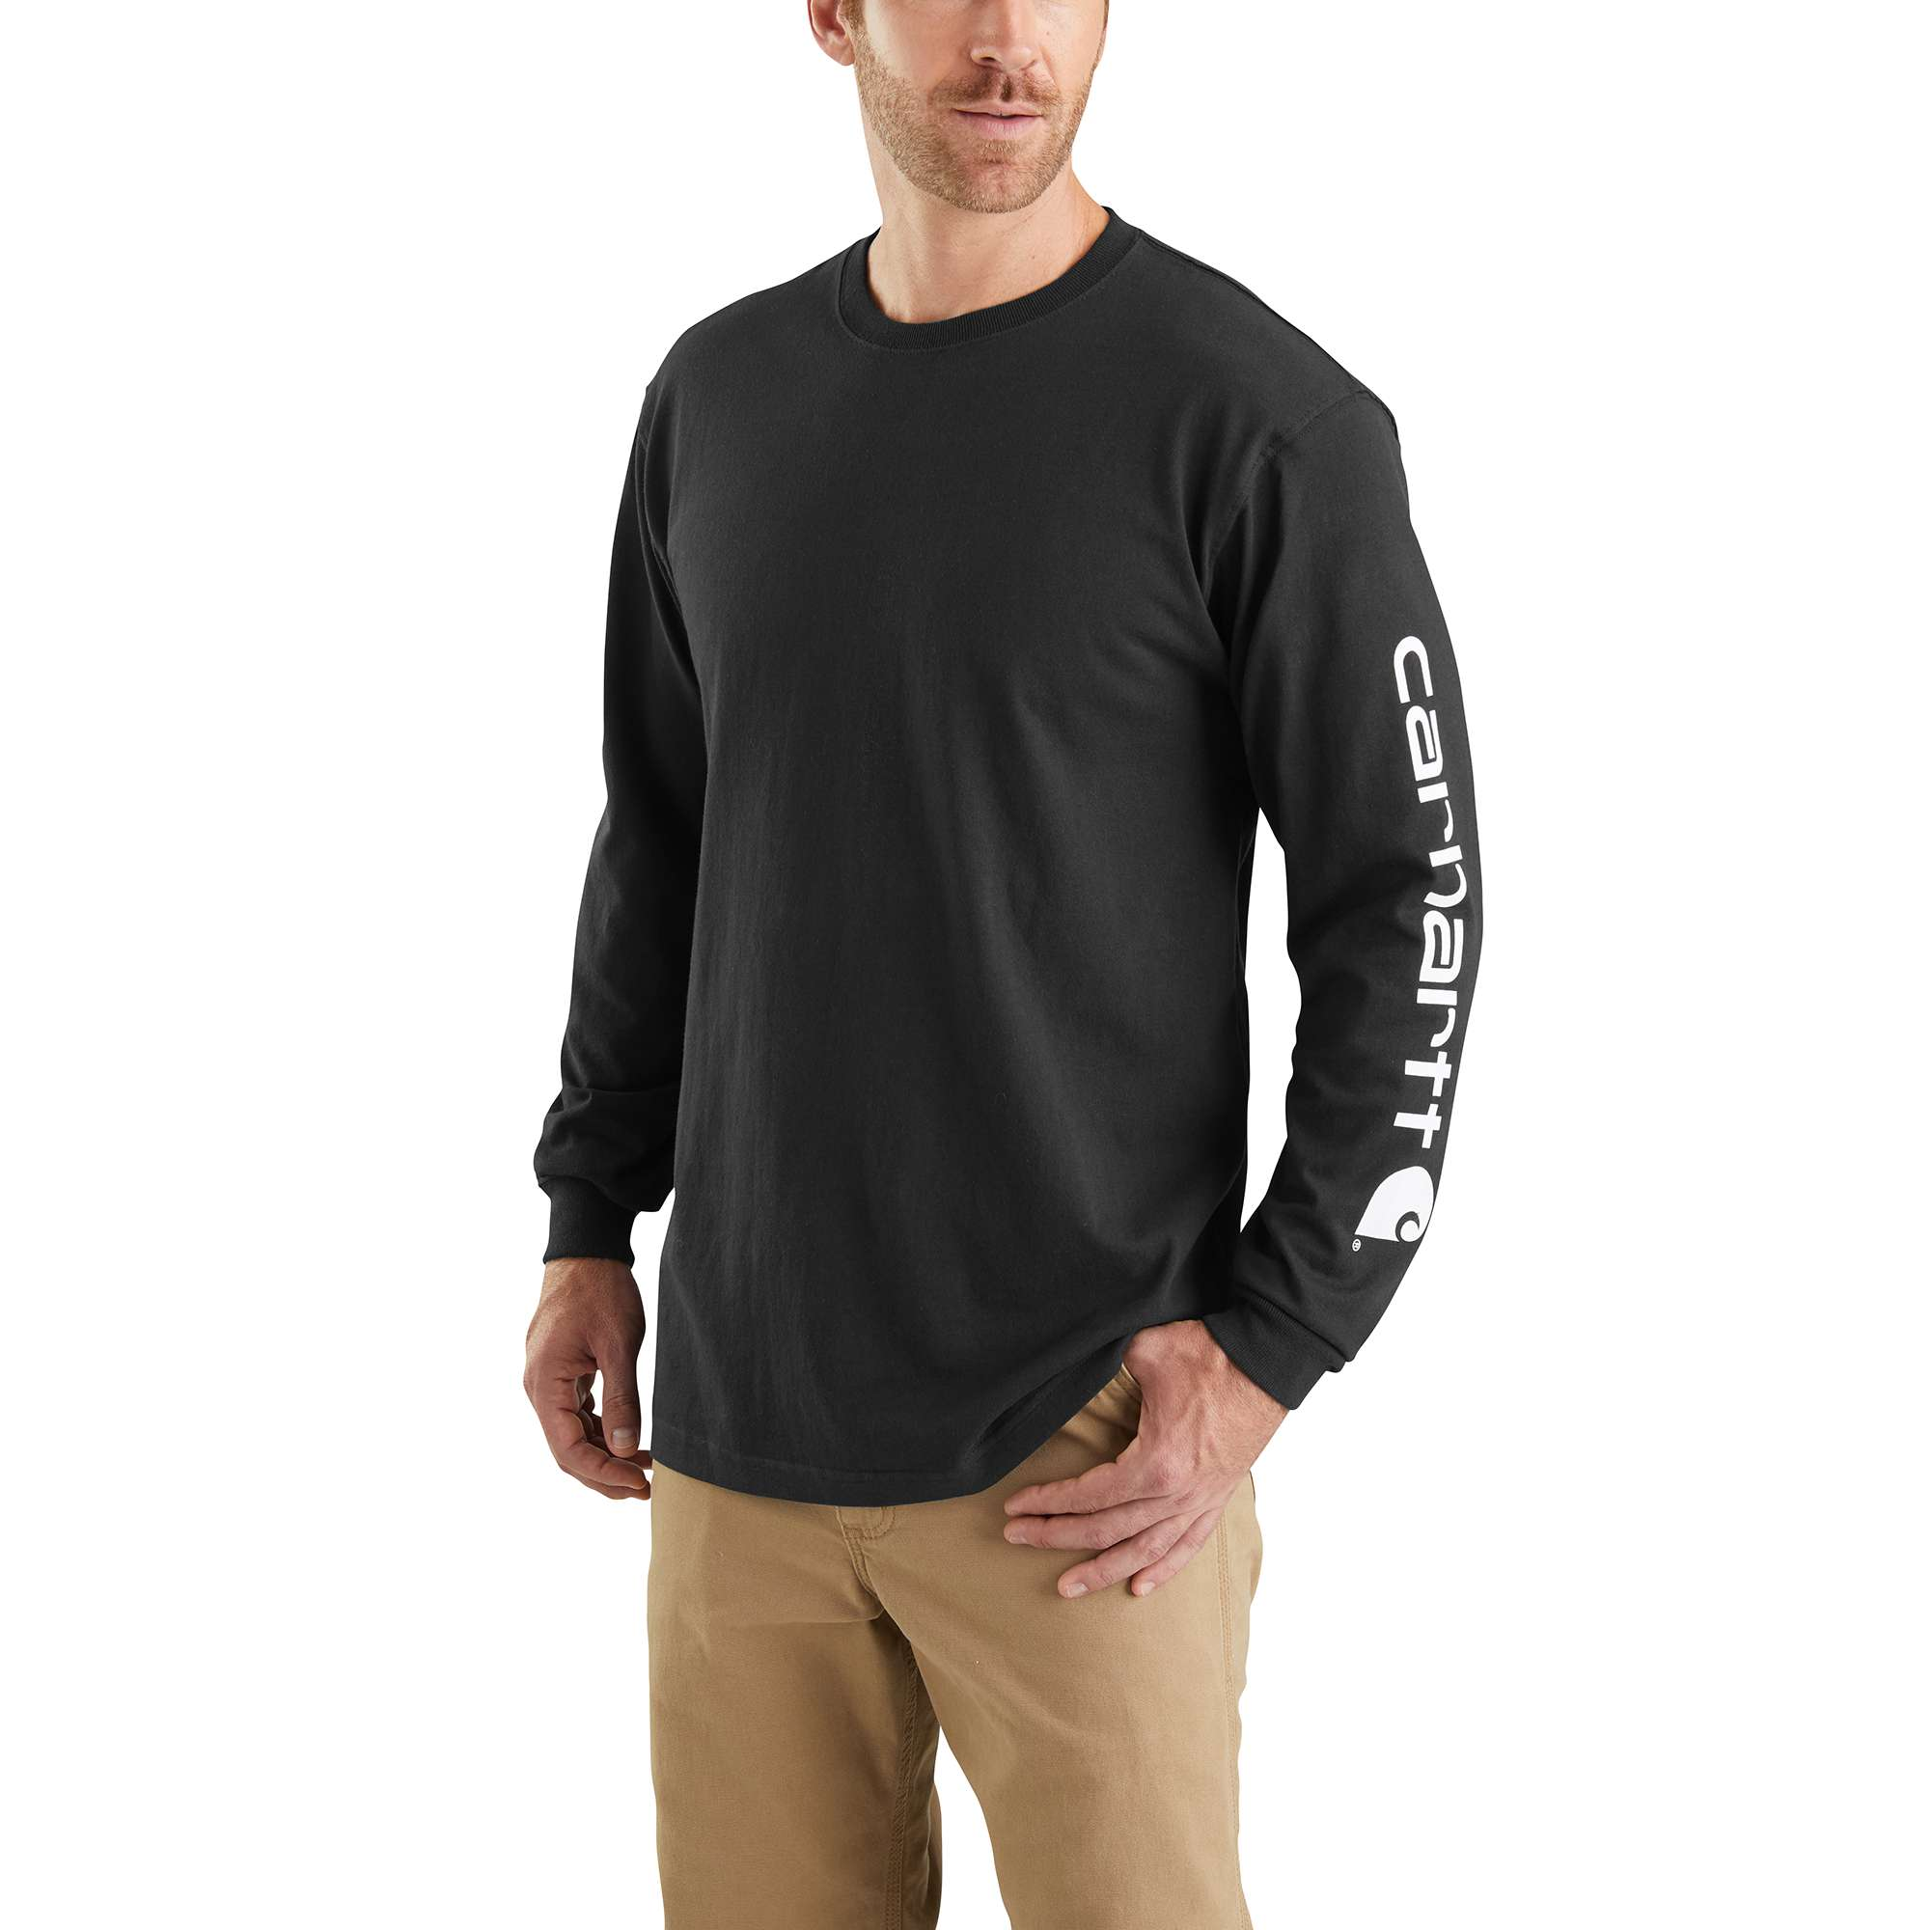 Men's  Long Sleeve Signature Logo Tall Tee, Black, swatch